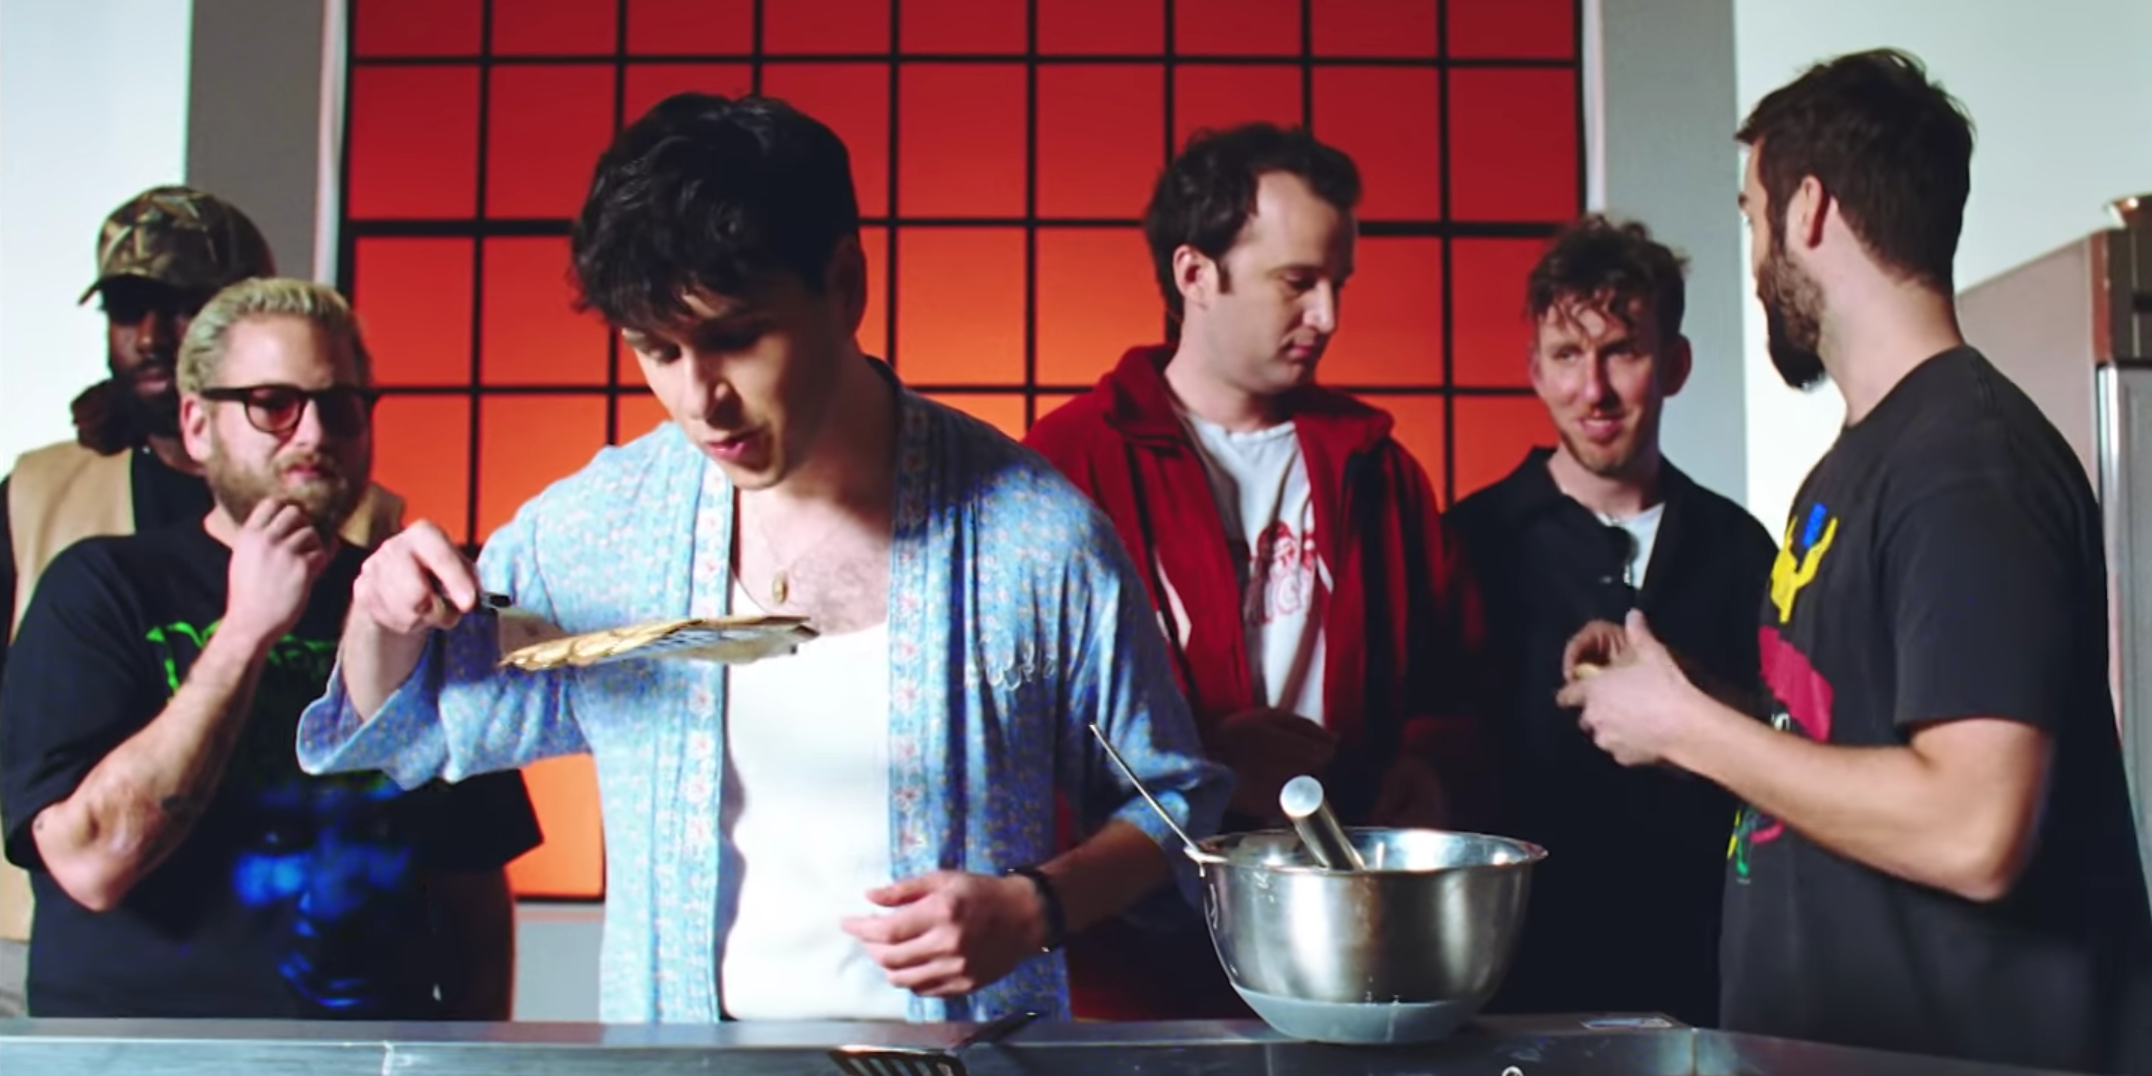 Vampire Weekend's Ezra Koenig flips pancakes masterfully for Jonah Hill and friends in music video for 'Harmony Hall' – watch